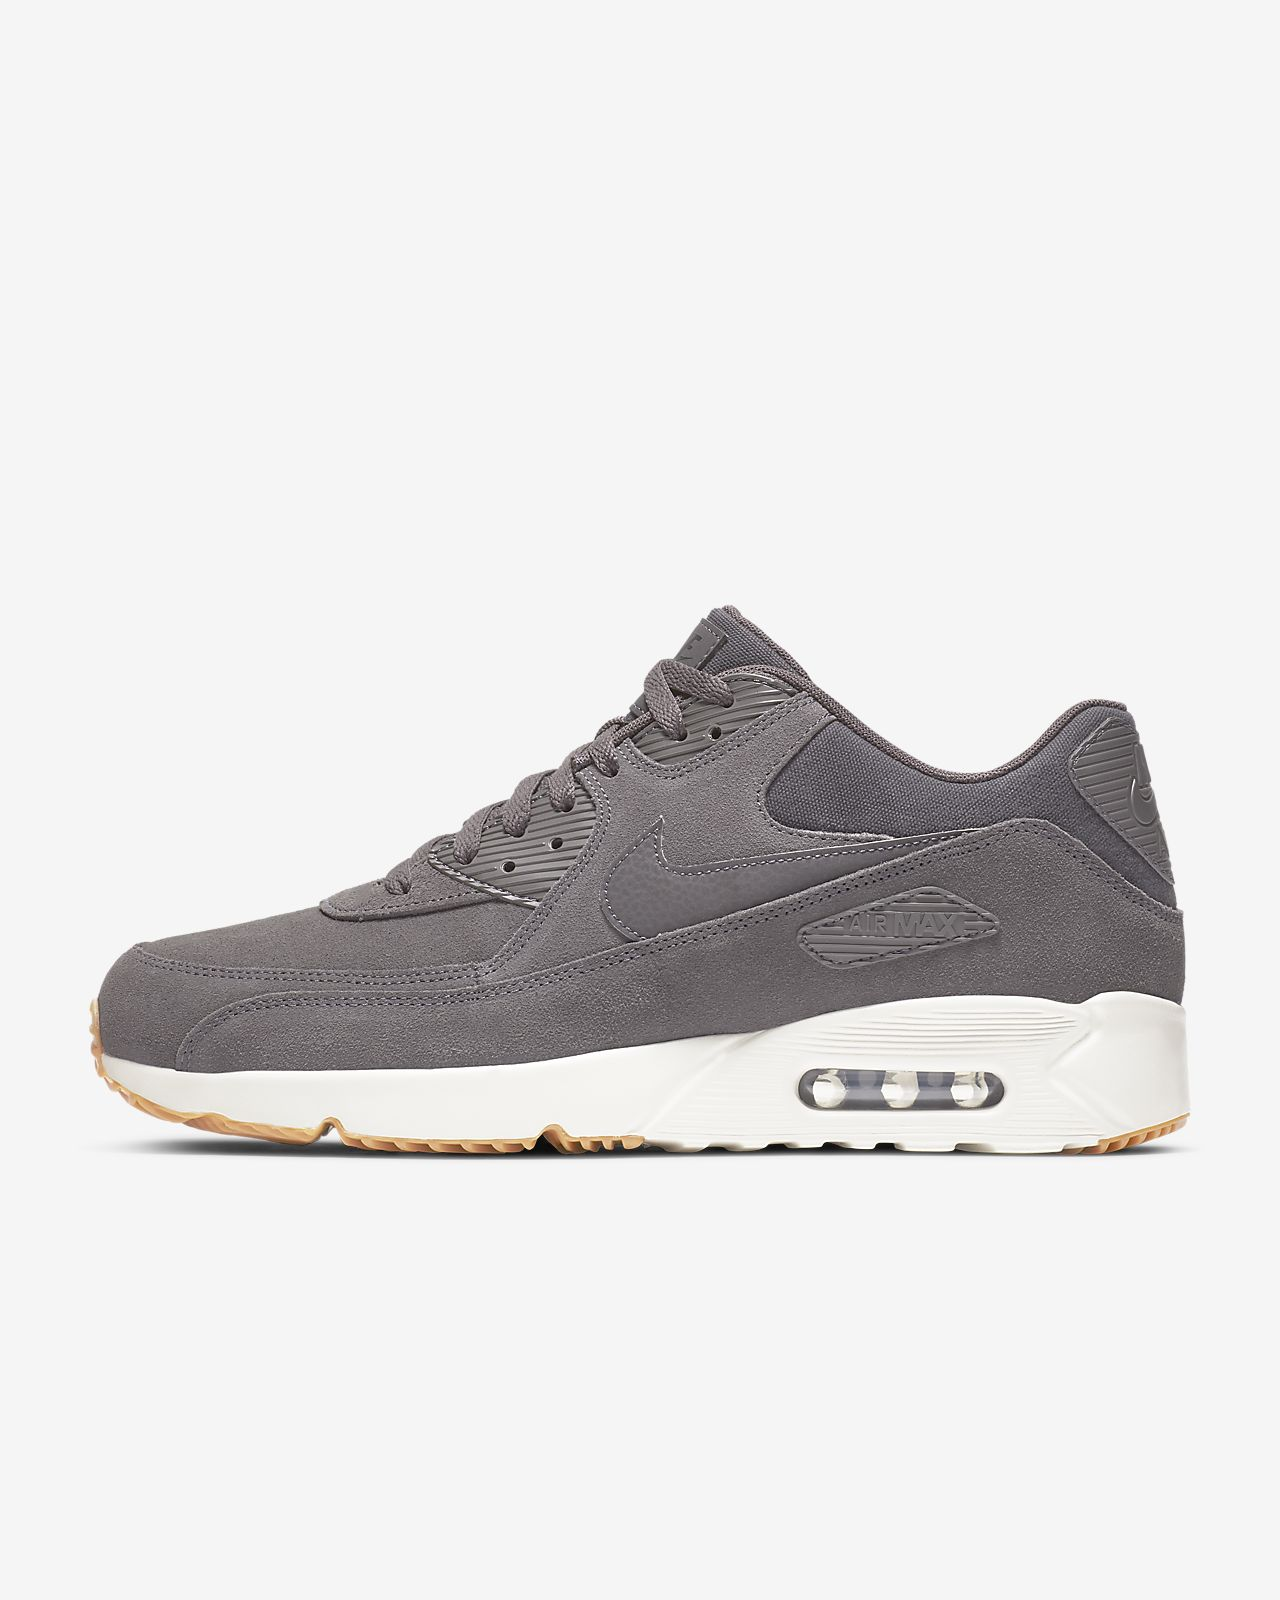 hot sale online fc6be 57190 ... Chaussure Nike Air Max 90 Ultra 2.0 pour Homme